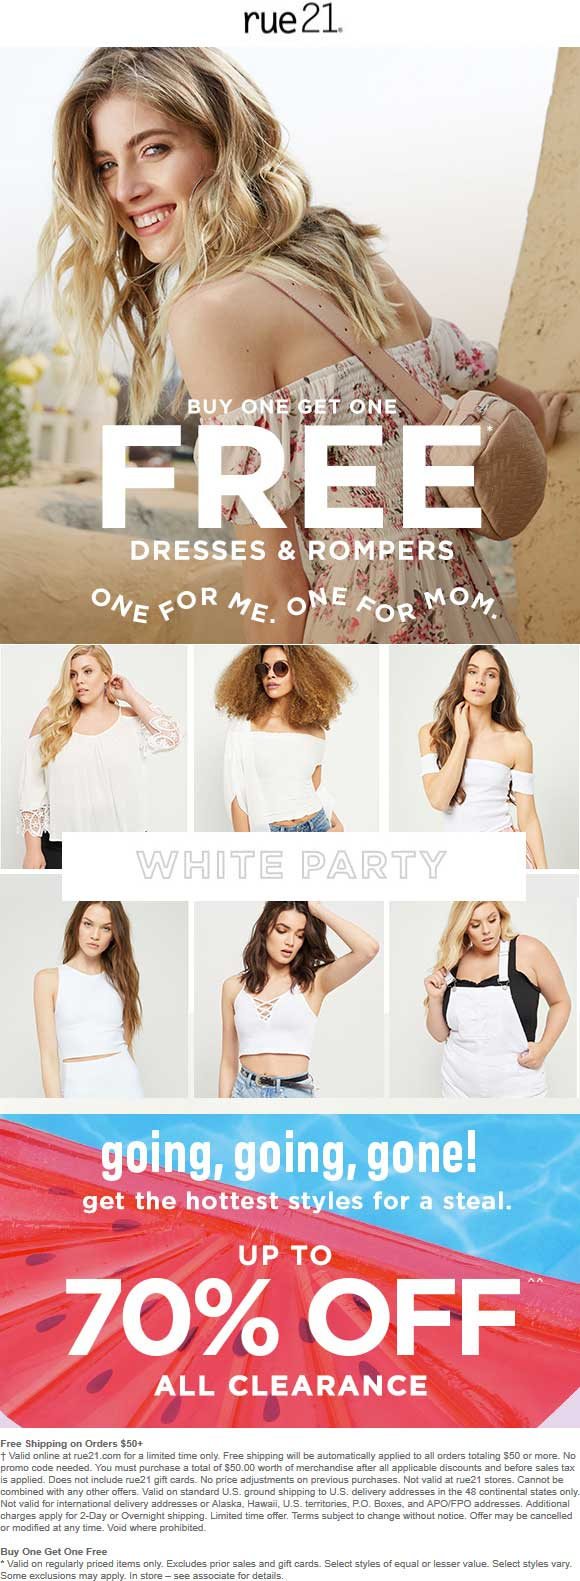 Rue21.com Promo Coupon Second dress free at rue21, ditto online